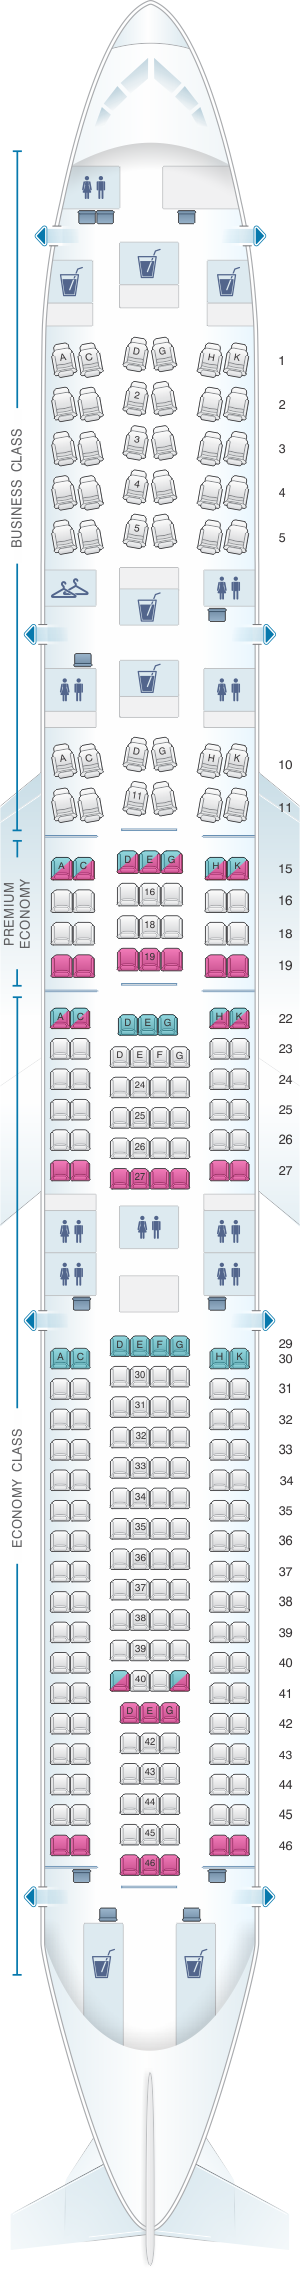 Seat map for Lufthansa Airbus A340 300 251pax